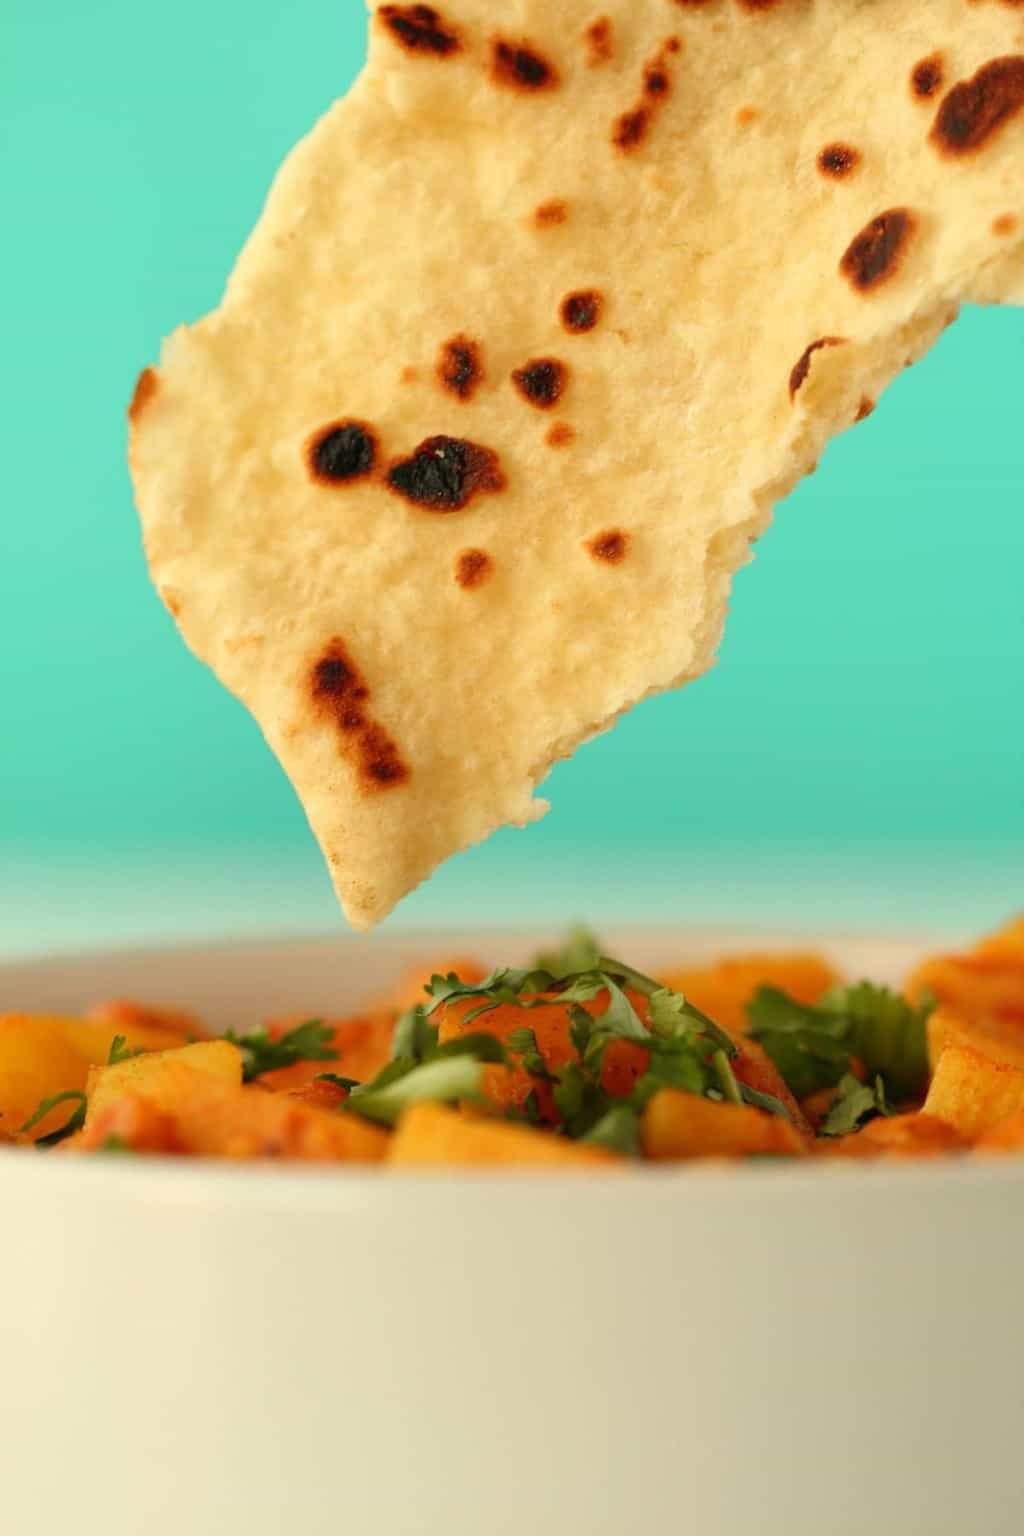 A piece of vegan naan dipping into a bowl of curry.